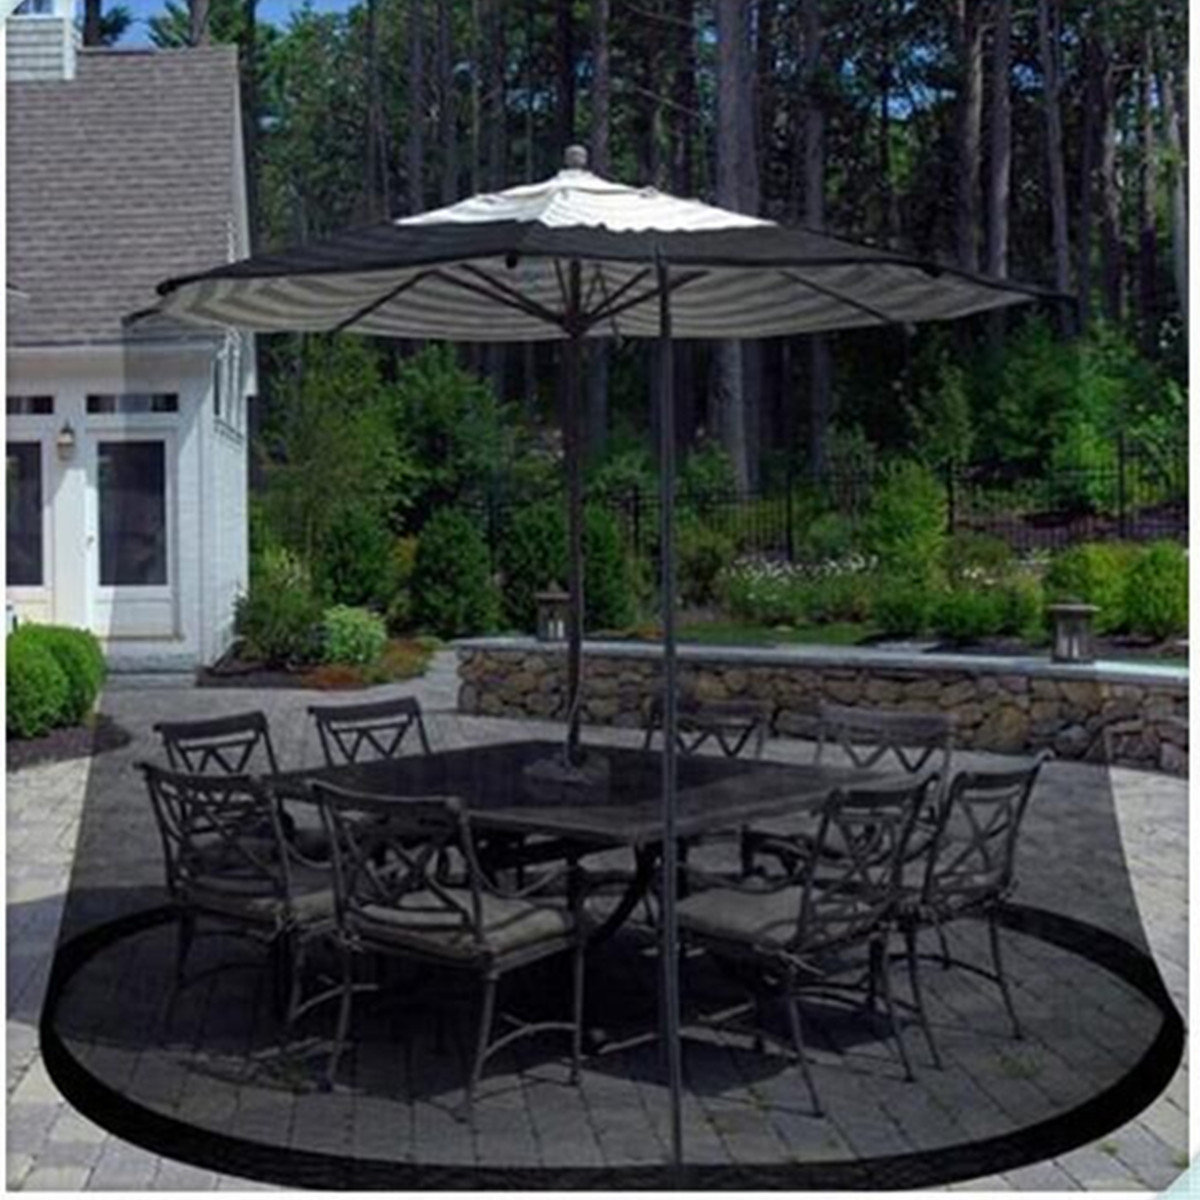 Polyester Yard Umbrella Screen Cover 335 220cm Mosquito Bug Insect Net Repellents Outdoor Patio Netting Garden Pest Control In From Home